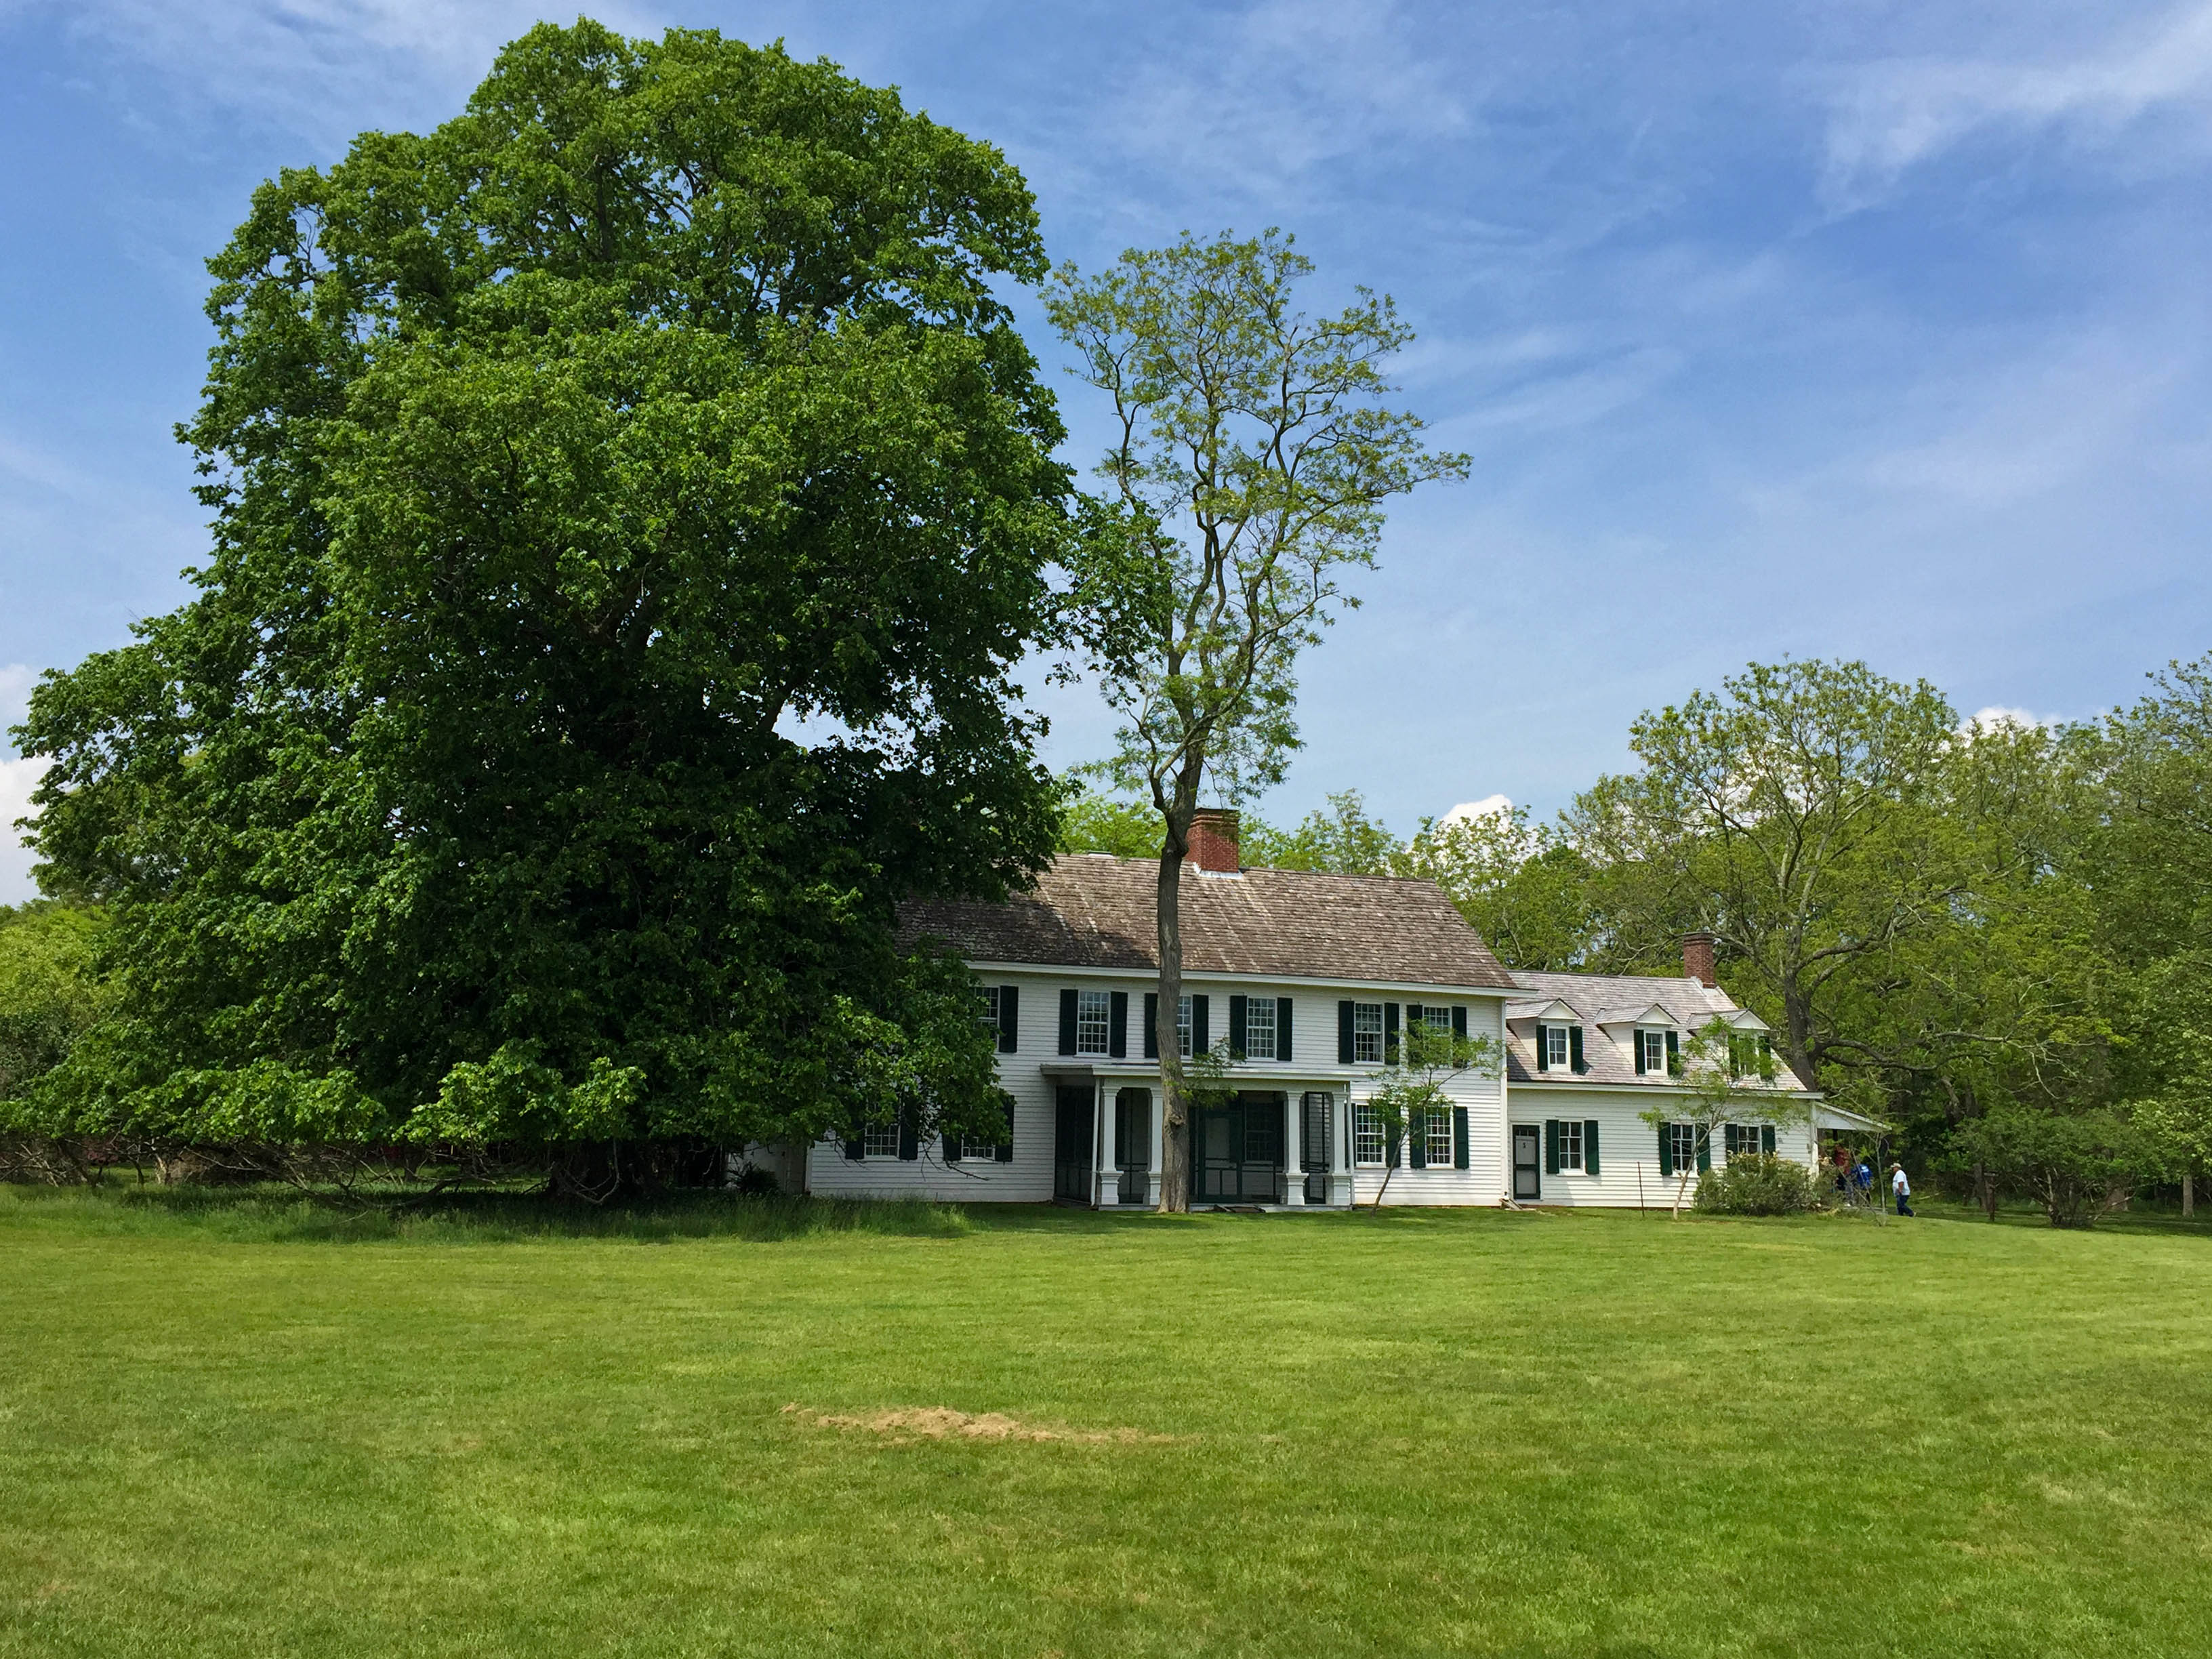 View of large, white historic home from lush green field.